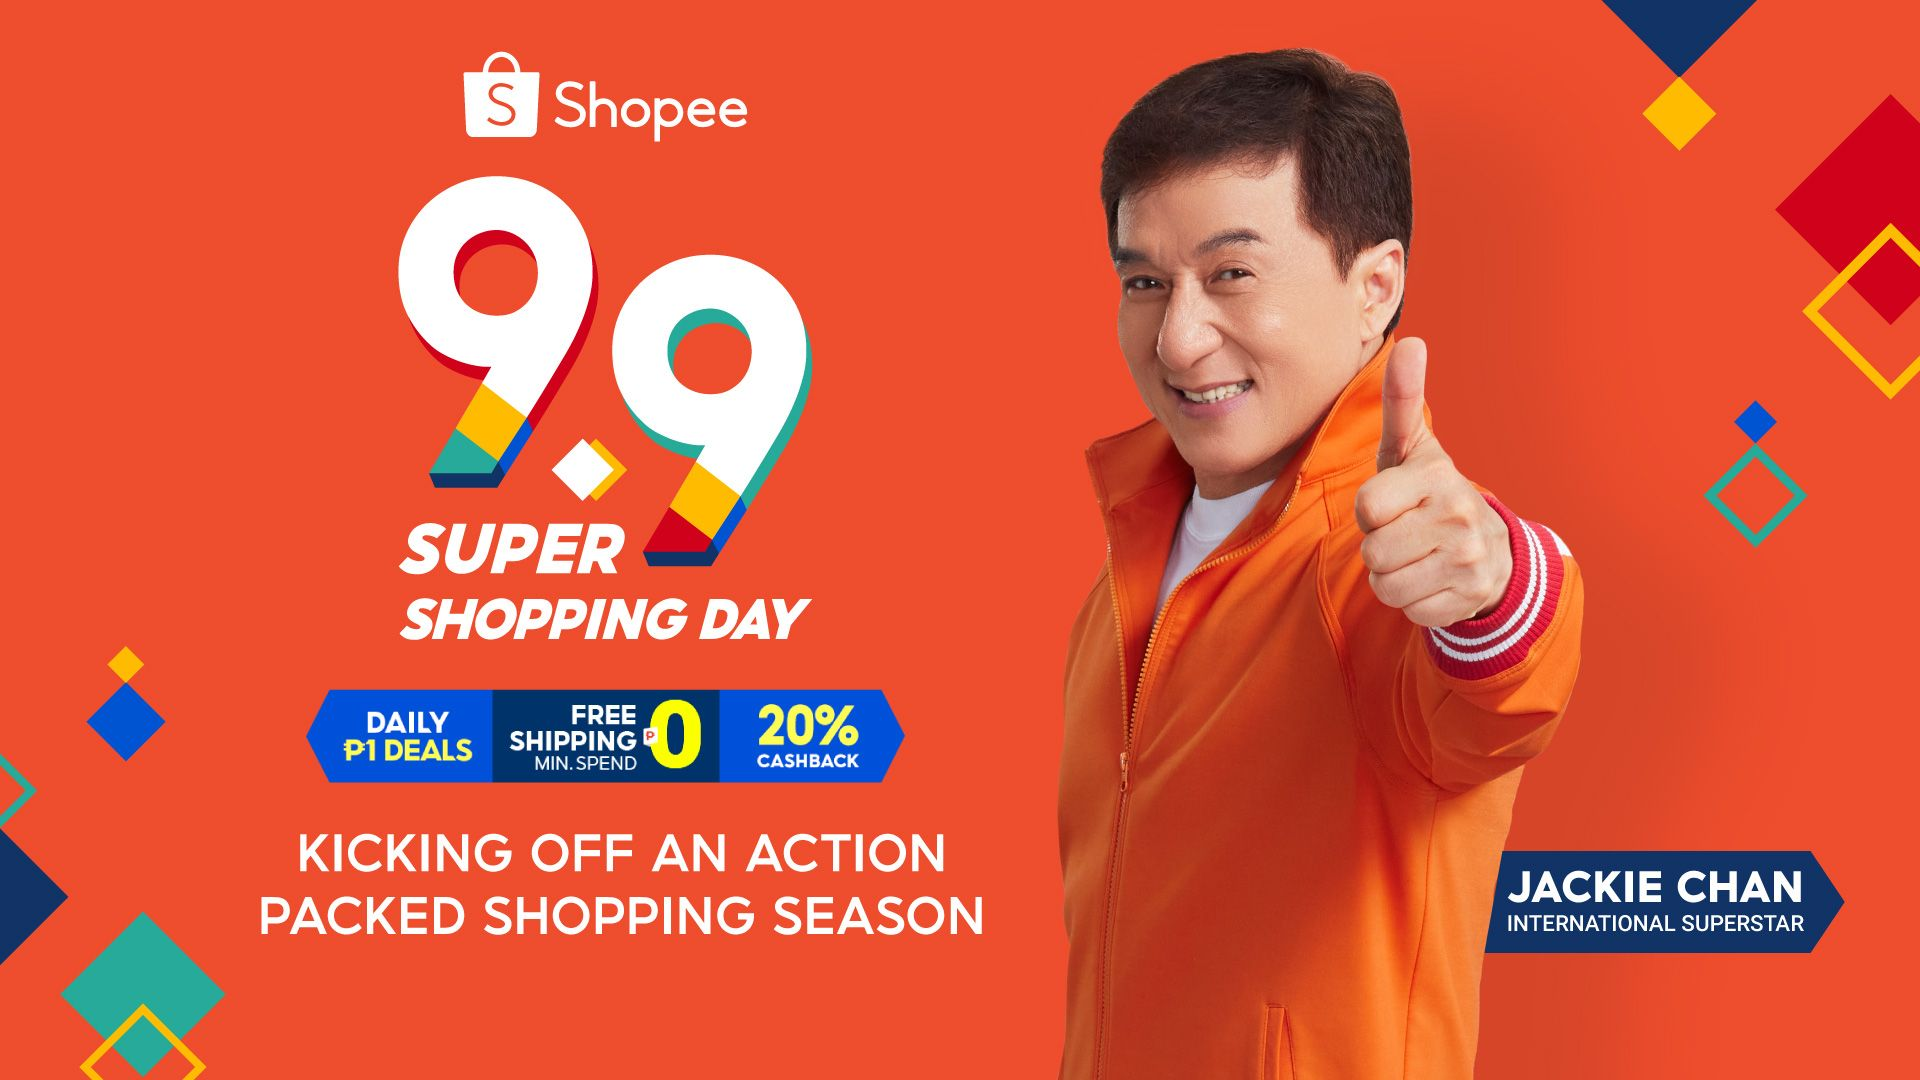 Jackie Chan high kicks Shopee 9.9 Super Shopping Day photo from UNBOX PH